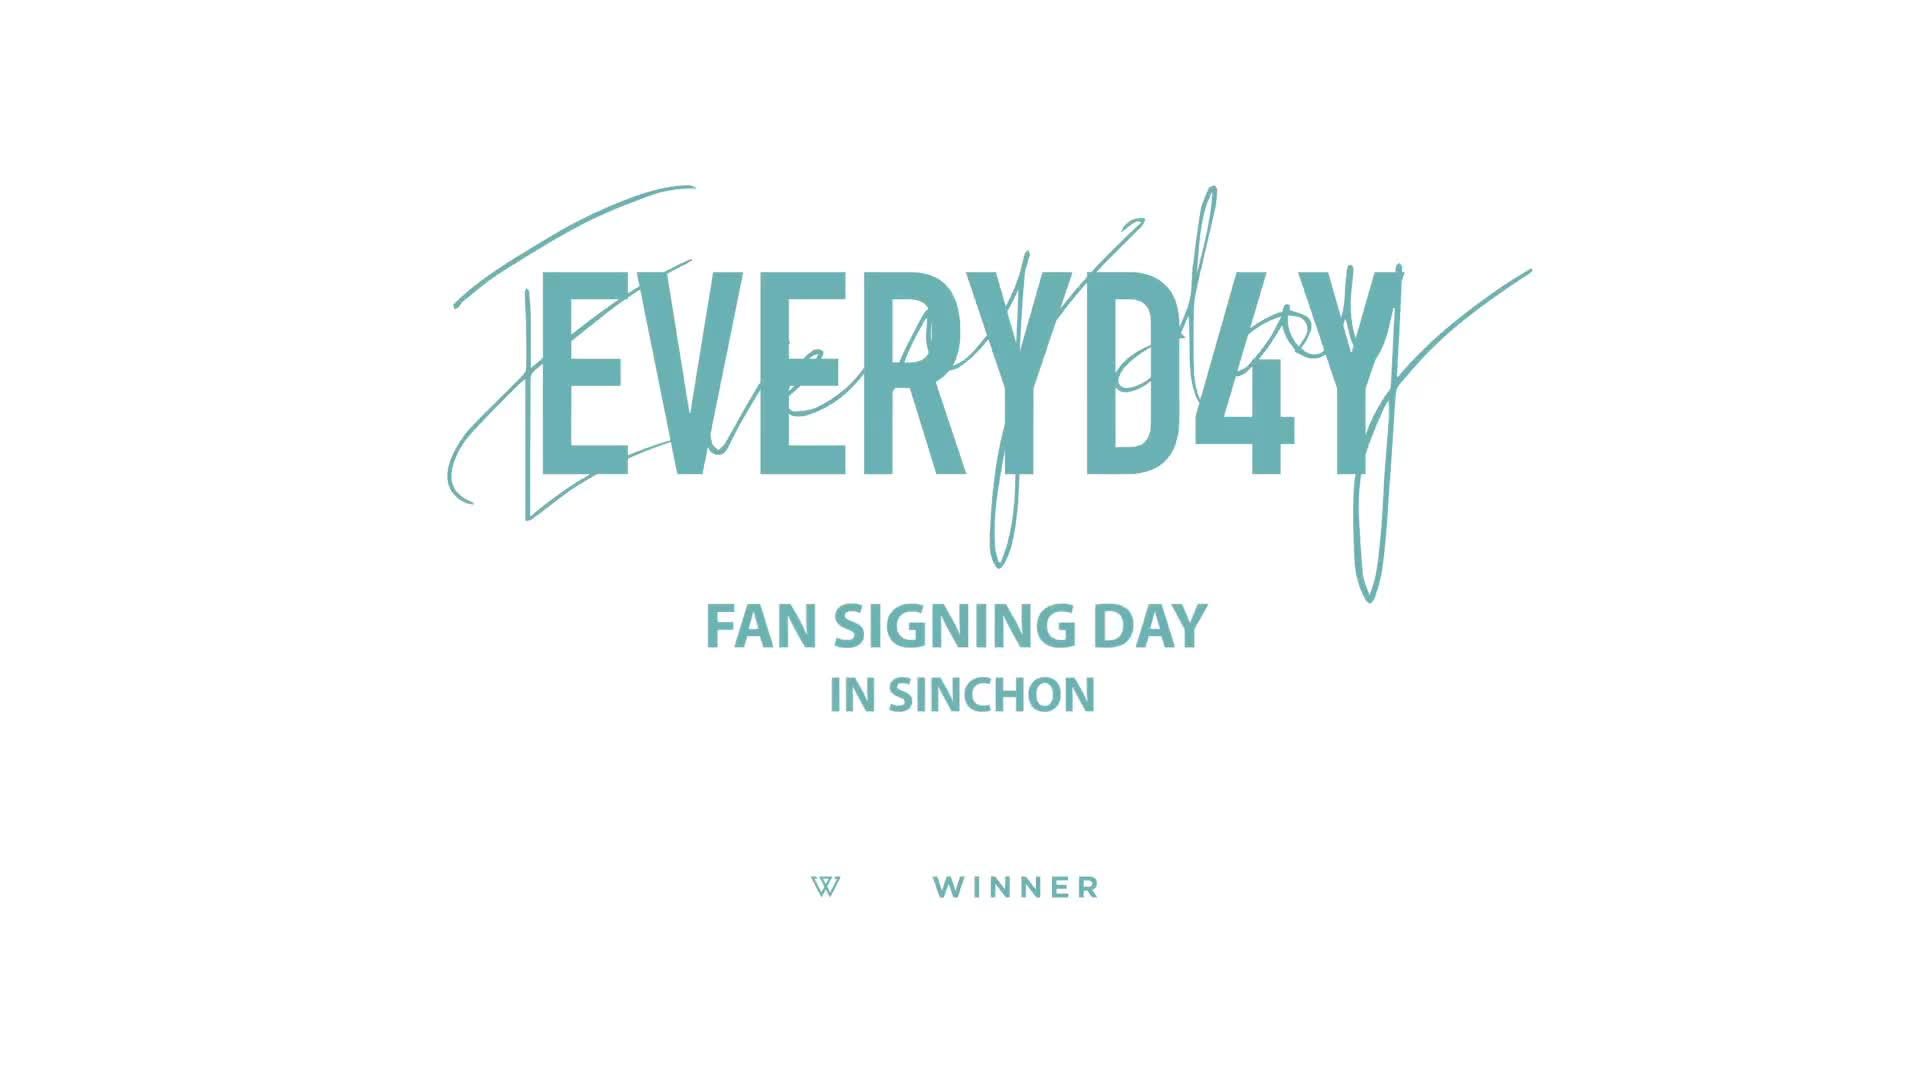 WINNER - 'EVERYD4Y' FAN SIGNING DAY IN SINCHON